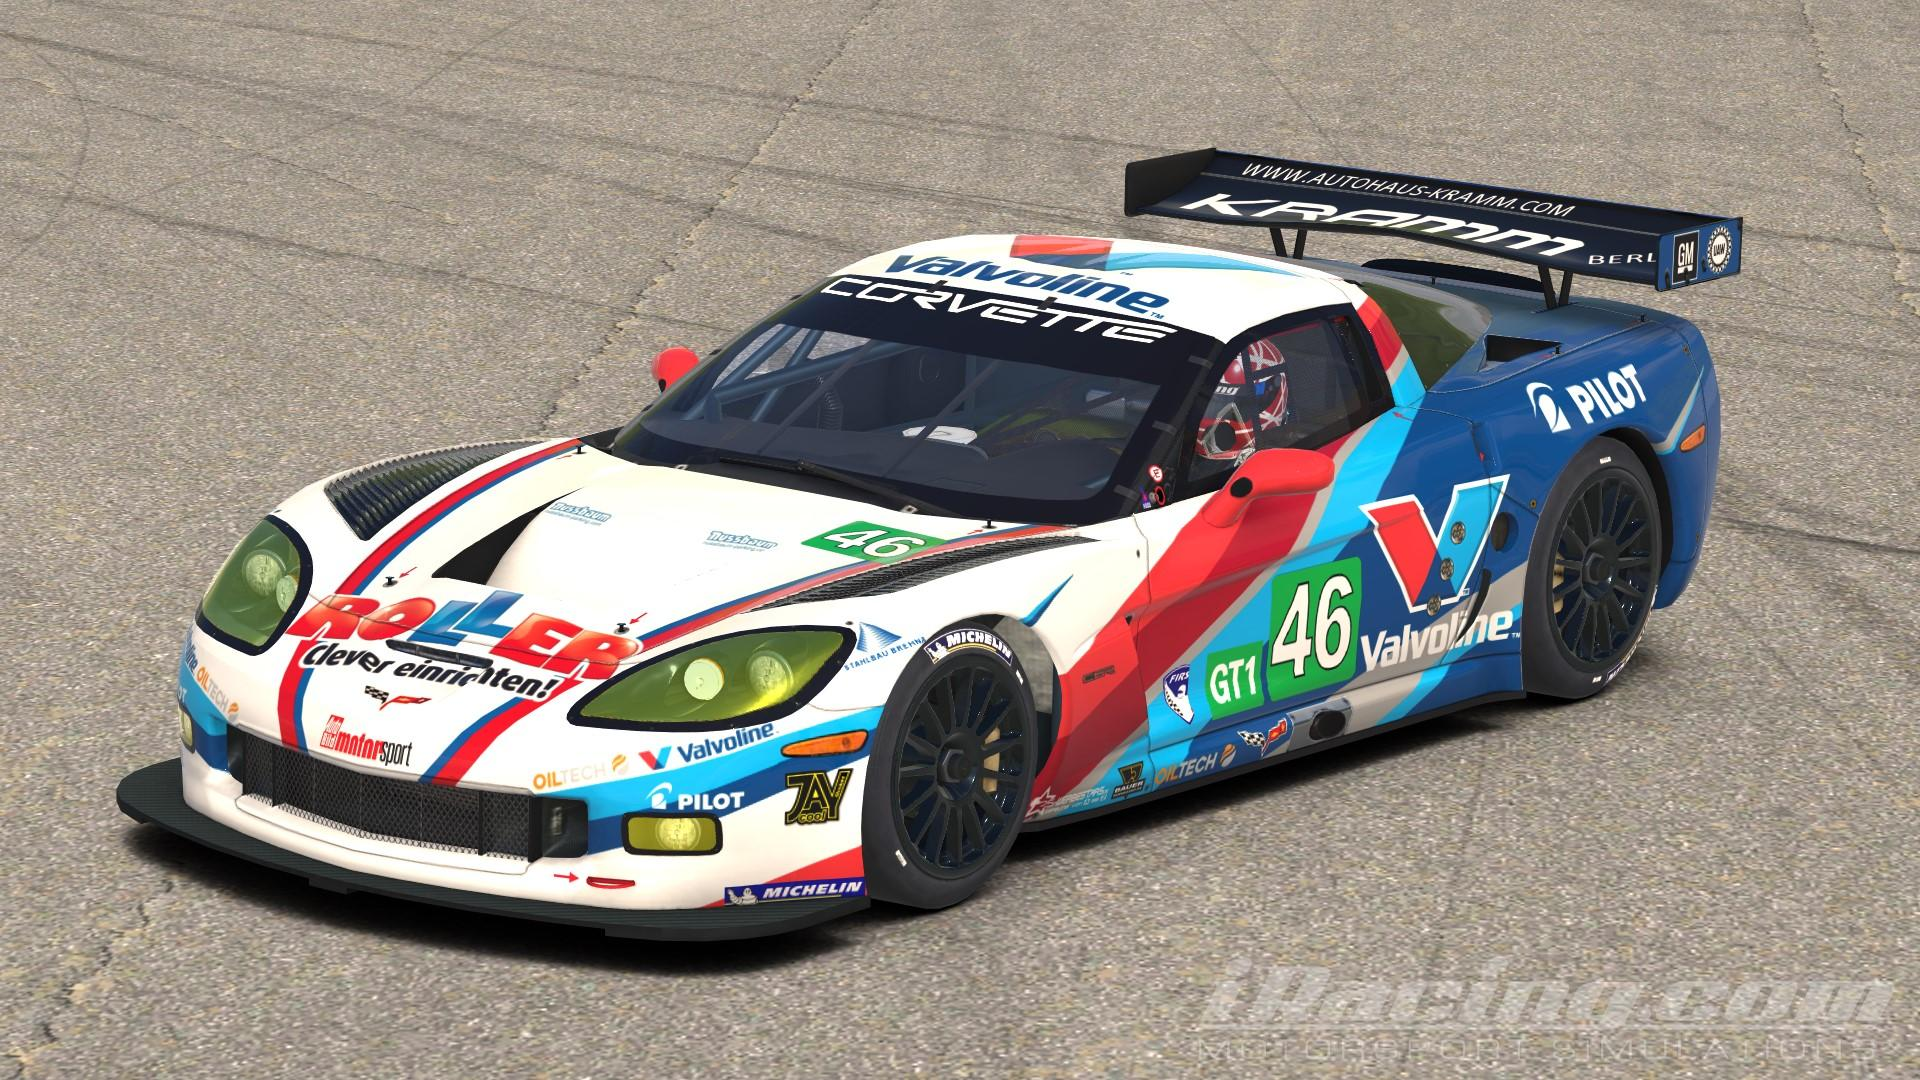 Valvoline Roller C6R by Ken Huff   Trading Paints 1920x1080